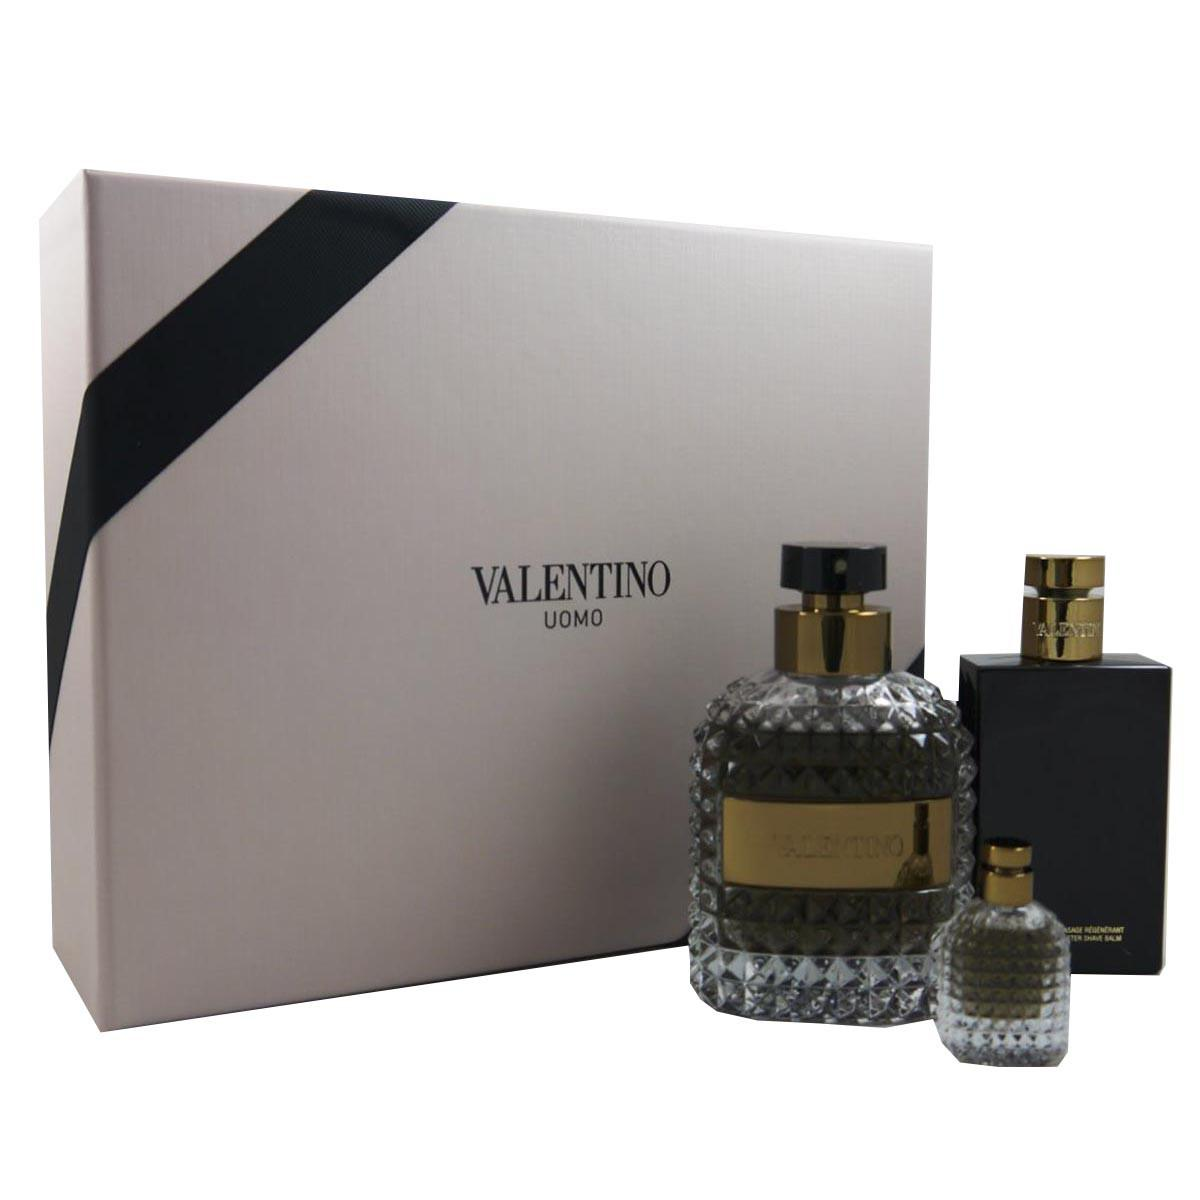 Valentino Uomo Eau De Toilette 100 ml After Shave 100 ml Miniature